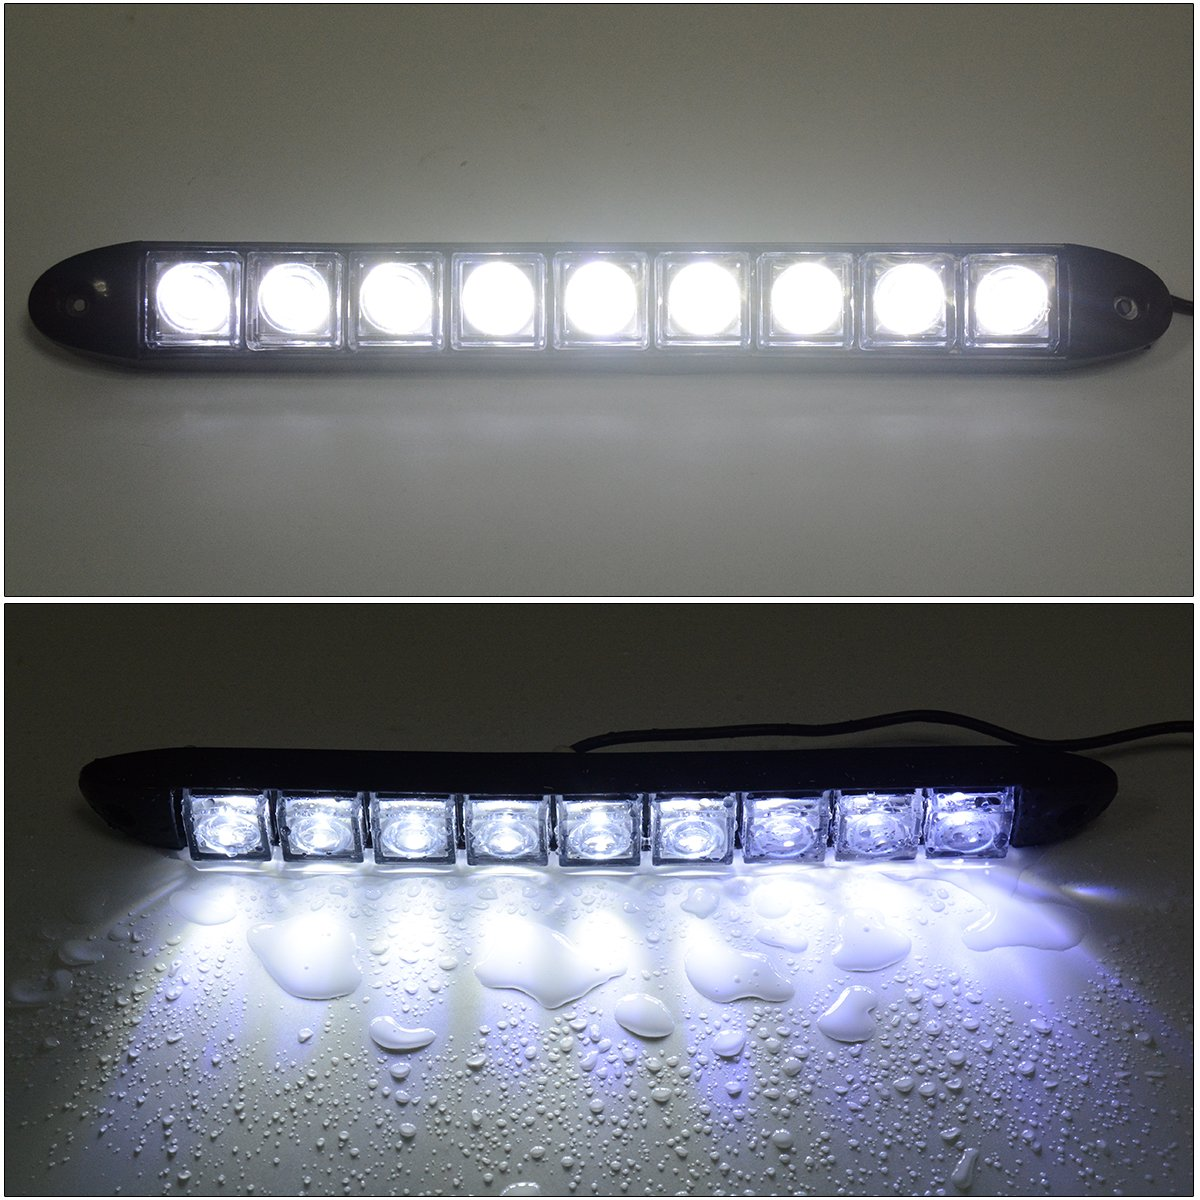 Tonsee 2x 30 LED Car Daytime Running Light DRL Daylight Lamp with Turn Lights